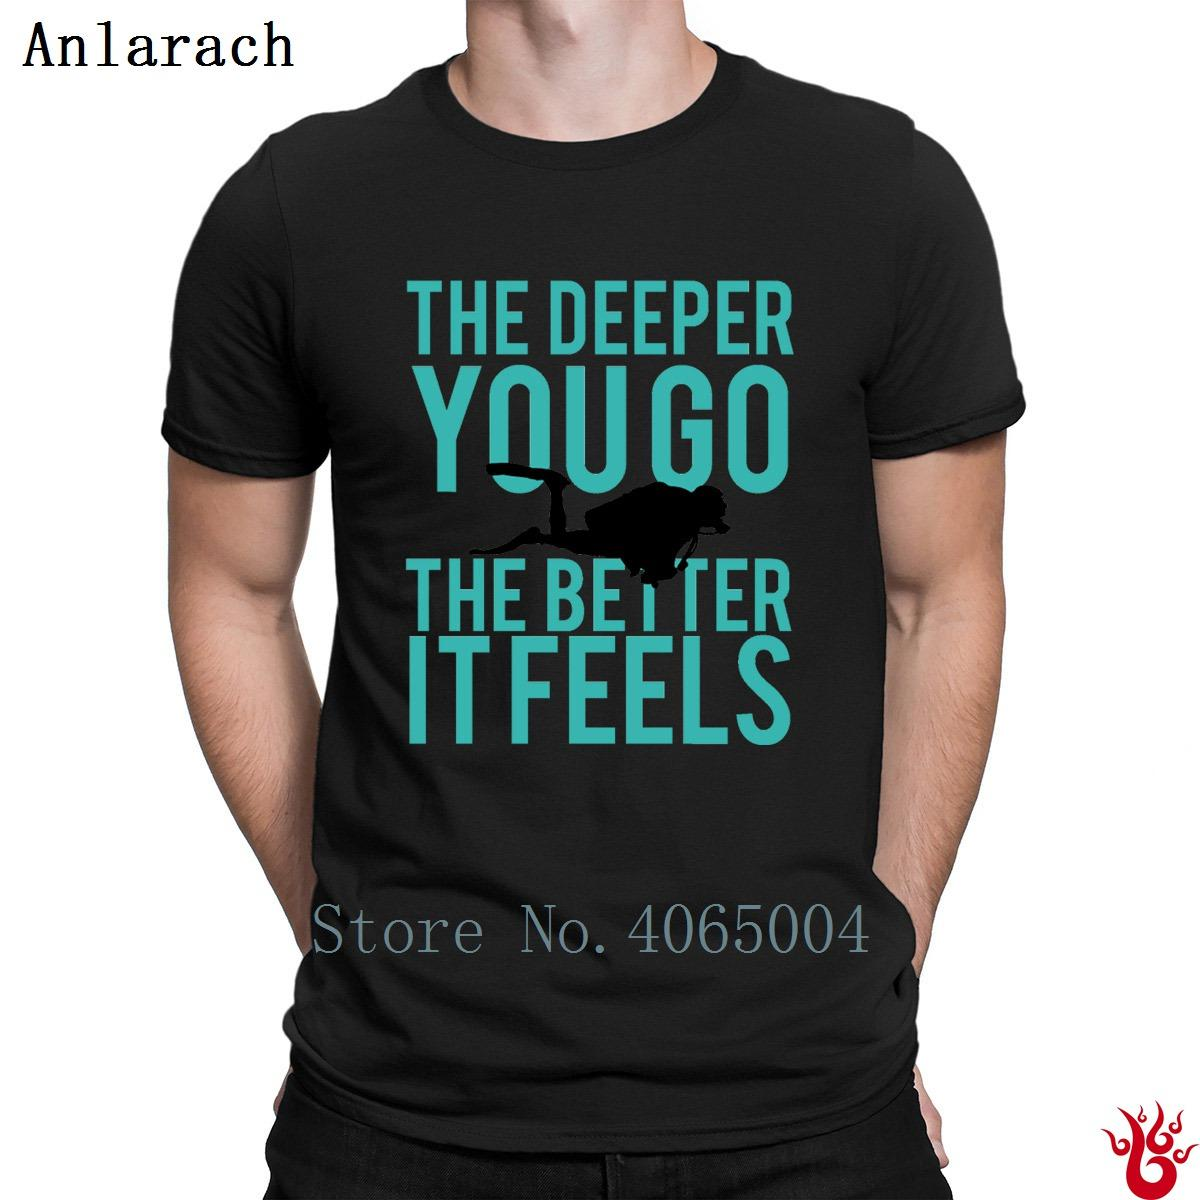 Scuba Divings Diver The Deeper You Go The Bette T-Shirt Pattern Tshirt da uomo 2018 Comical Anti-Wrinkle Tee Shirt Girocollo